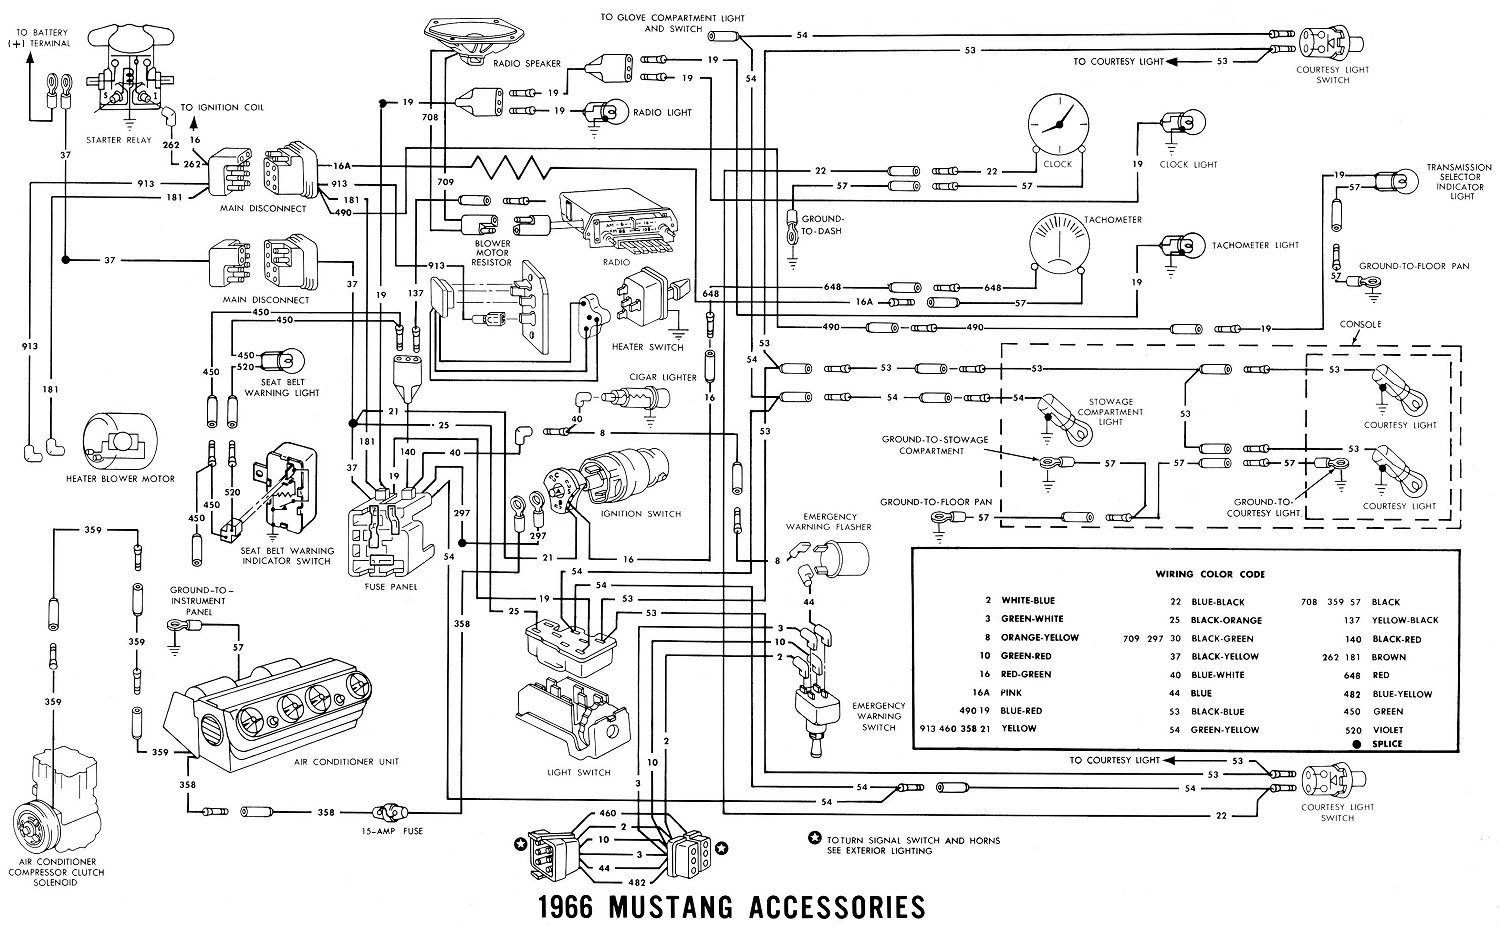 [NRIO_4796]   XE_7987] 66 Mustang Wiring Diagram 1966 Ford Mustang Ignition Wiring  Diagram Wiring Diagram | 1966 Ford Radio Wiring Diagram |  | Comin Opein Mohammedshrine Librar Wiring 101